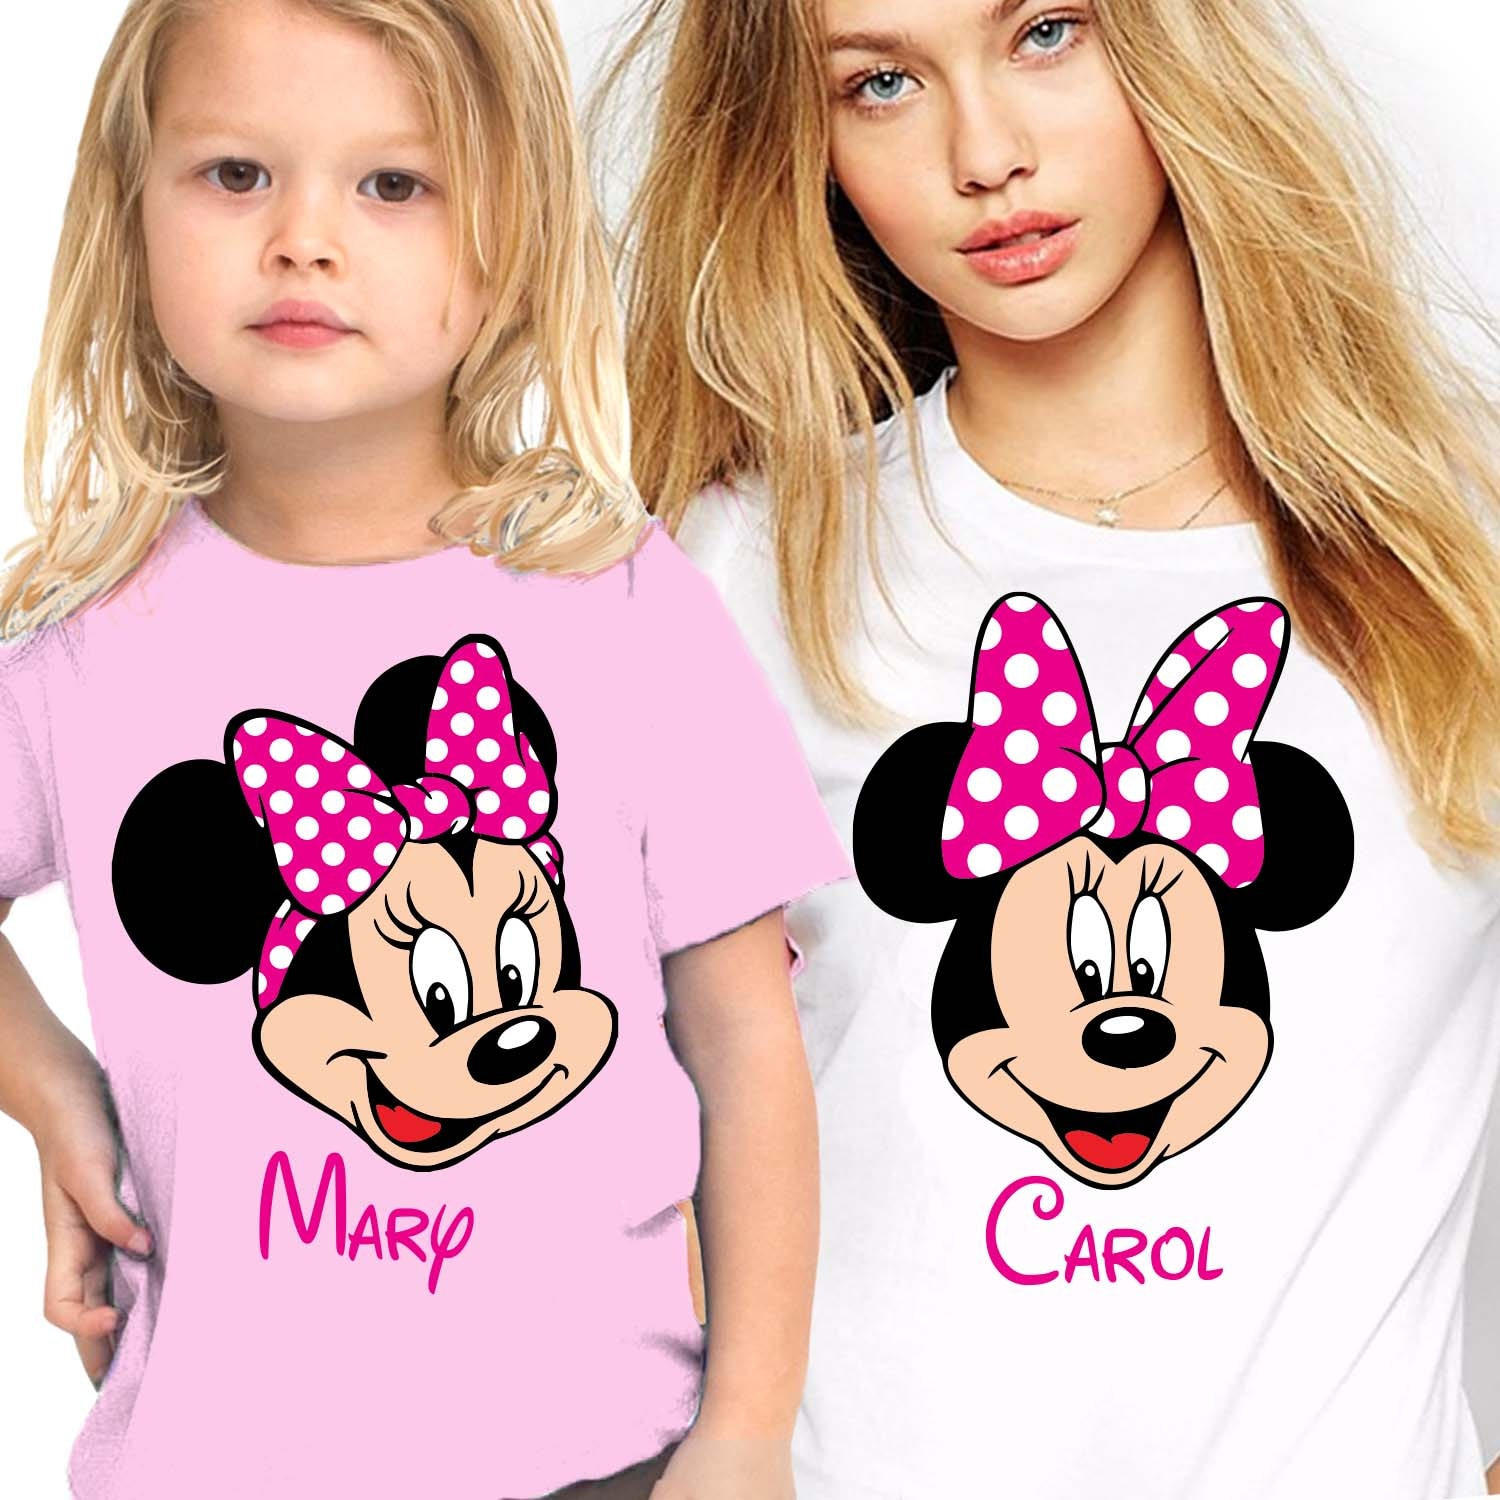 Mommy and me shirts Personalized Mommy and Me Disney shirts